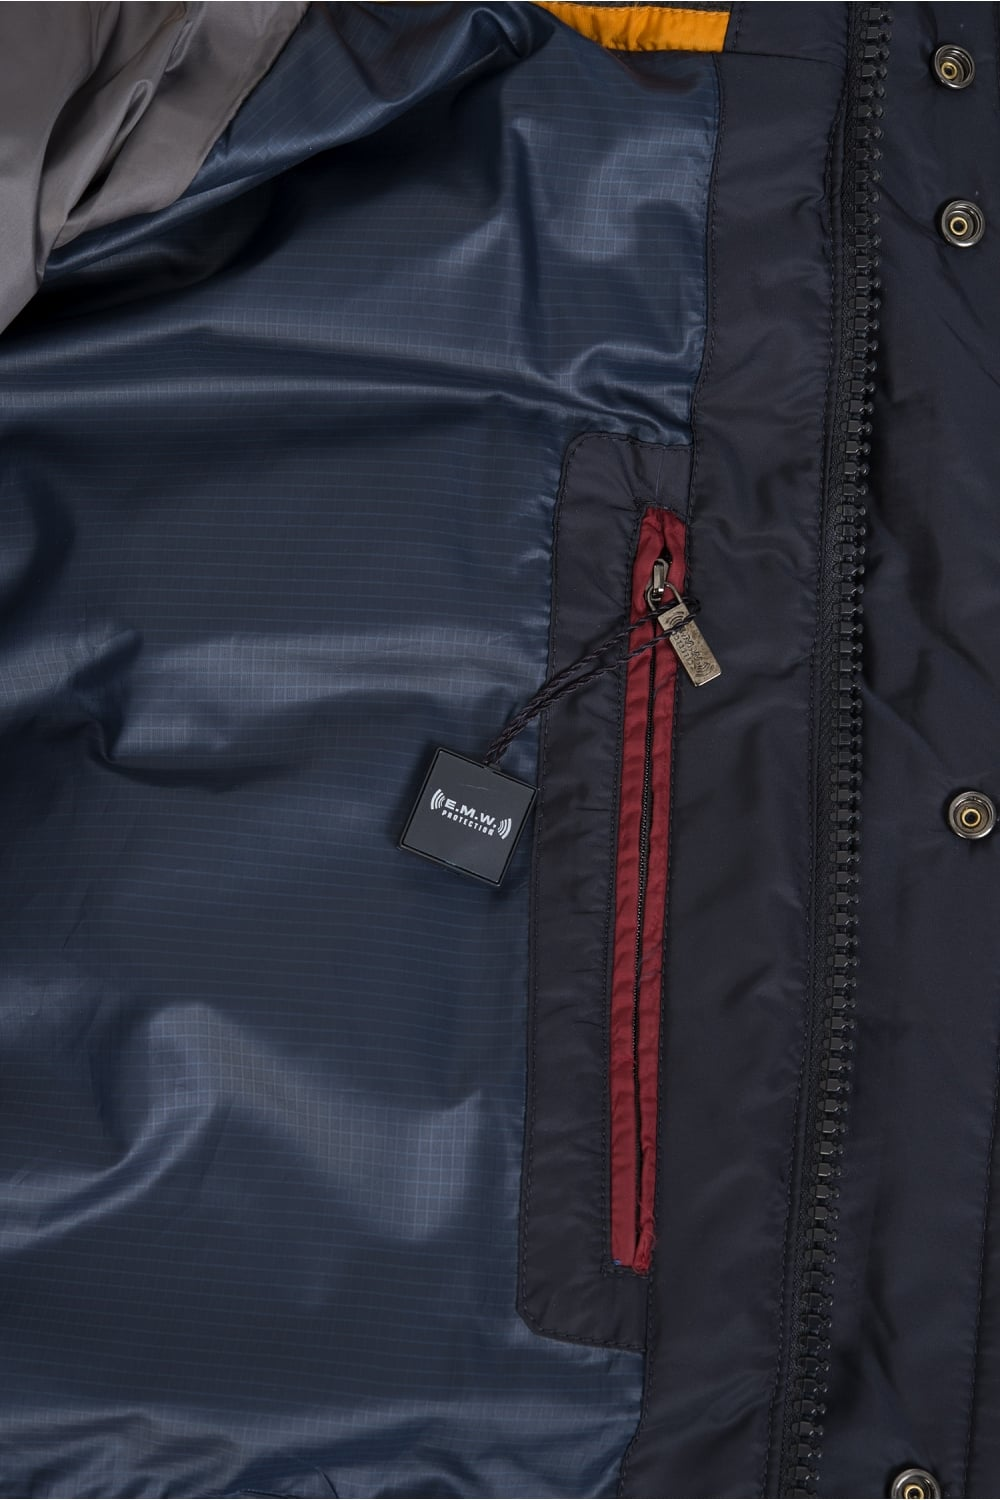 Paul Amp Shark Paul Amp Shark Woven Down Jacket Navy Paul